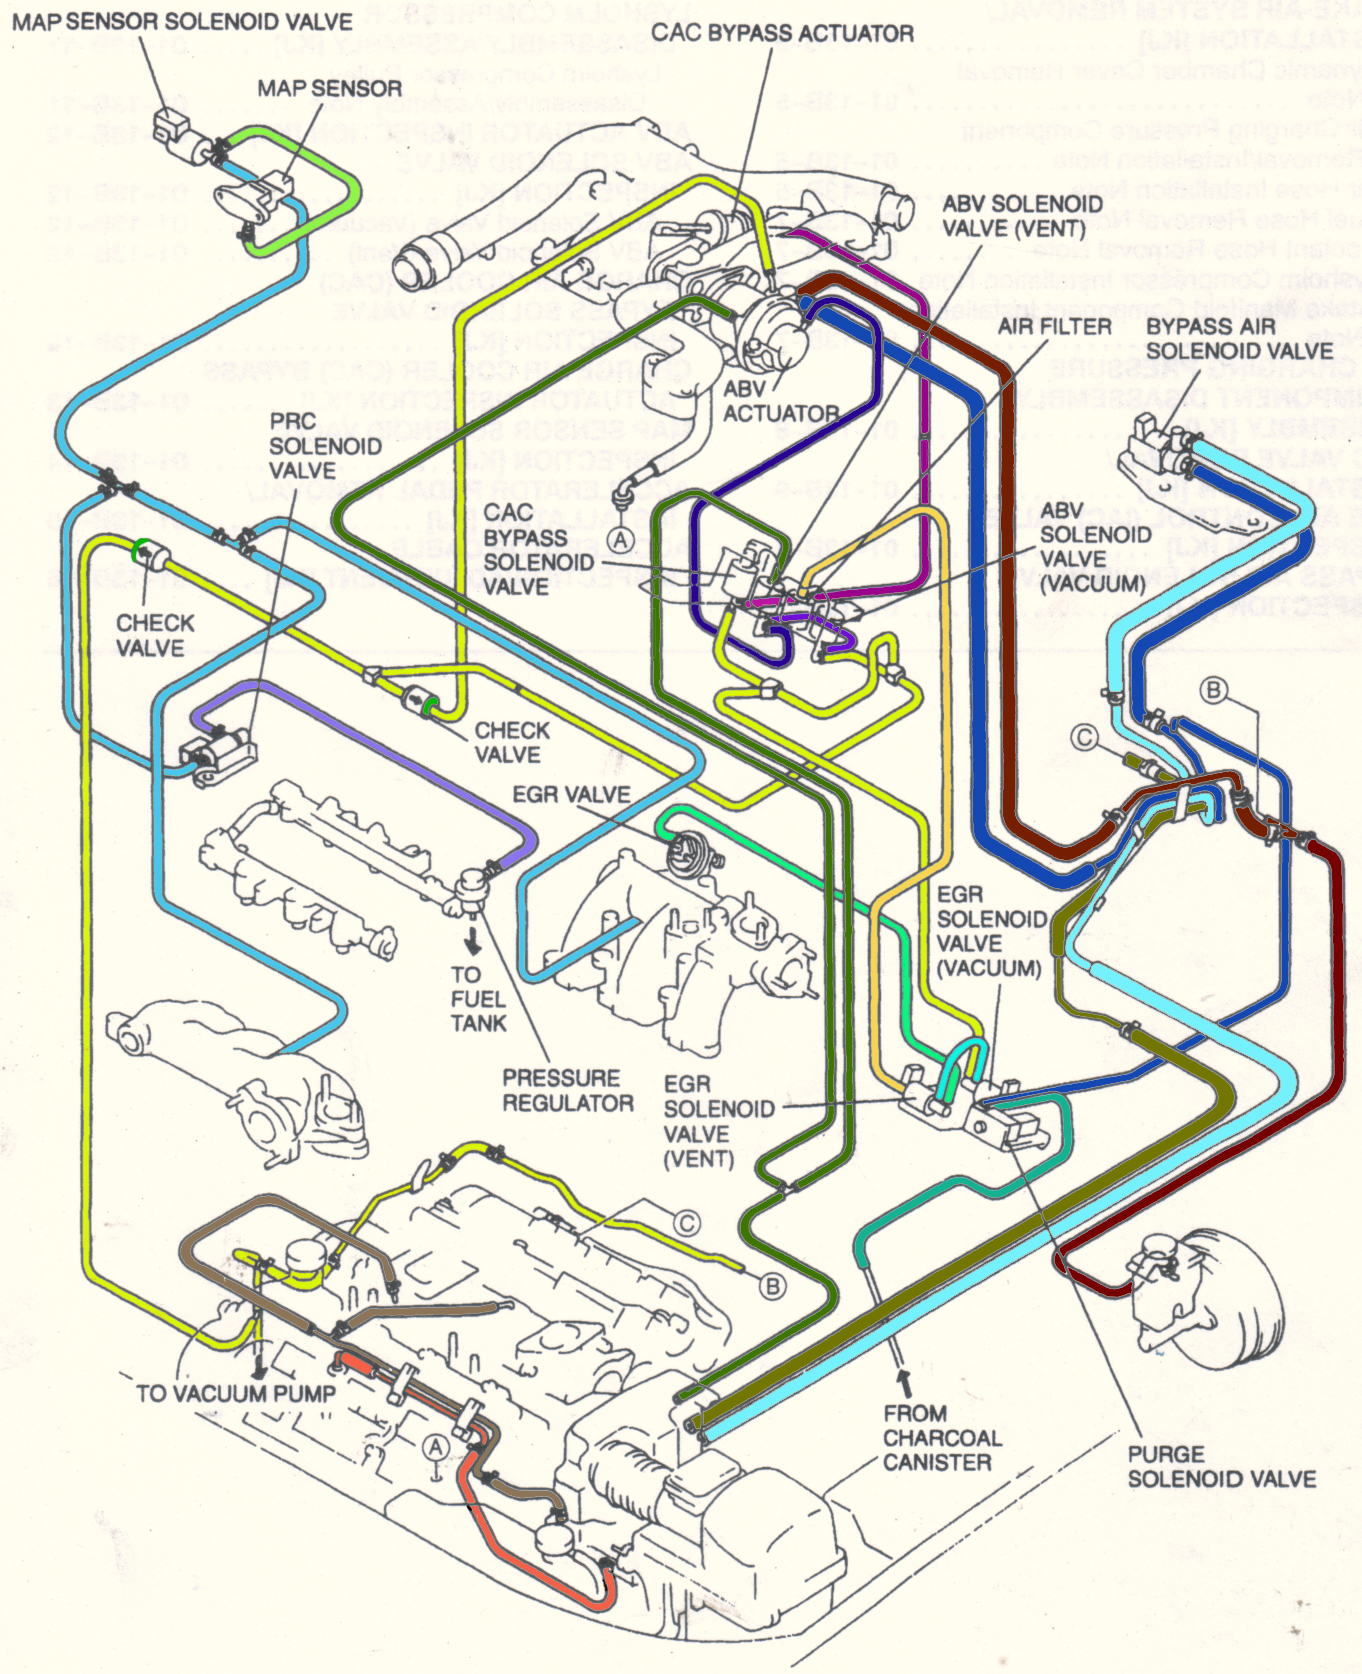 Mazda Rx8 Vacuum Line Diagram Wiring Will Be A Thing Rx7 Series 8 Millenia S Forum Rh Forums Mazdaworld Org Rx Motor Breakdown 2005